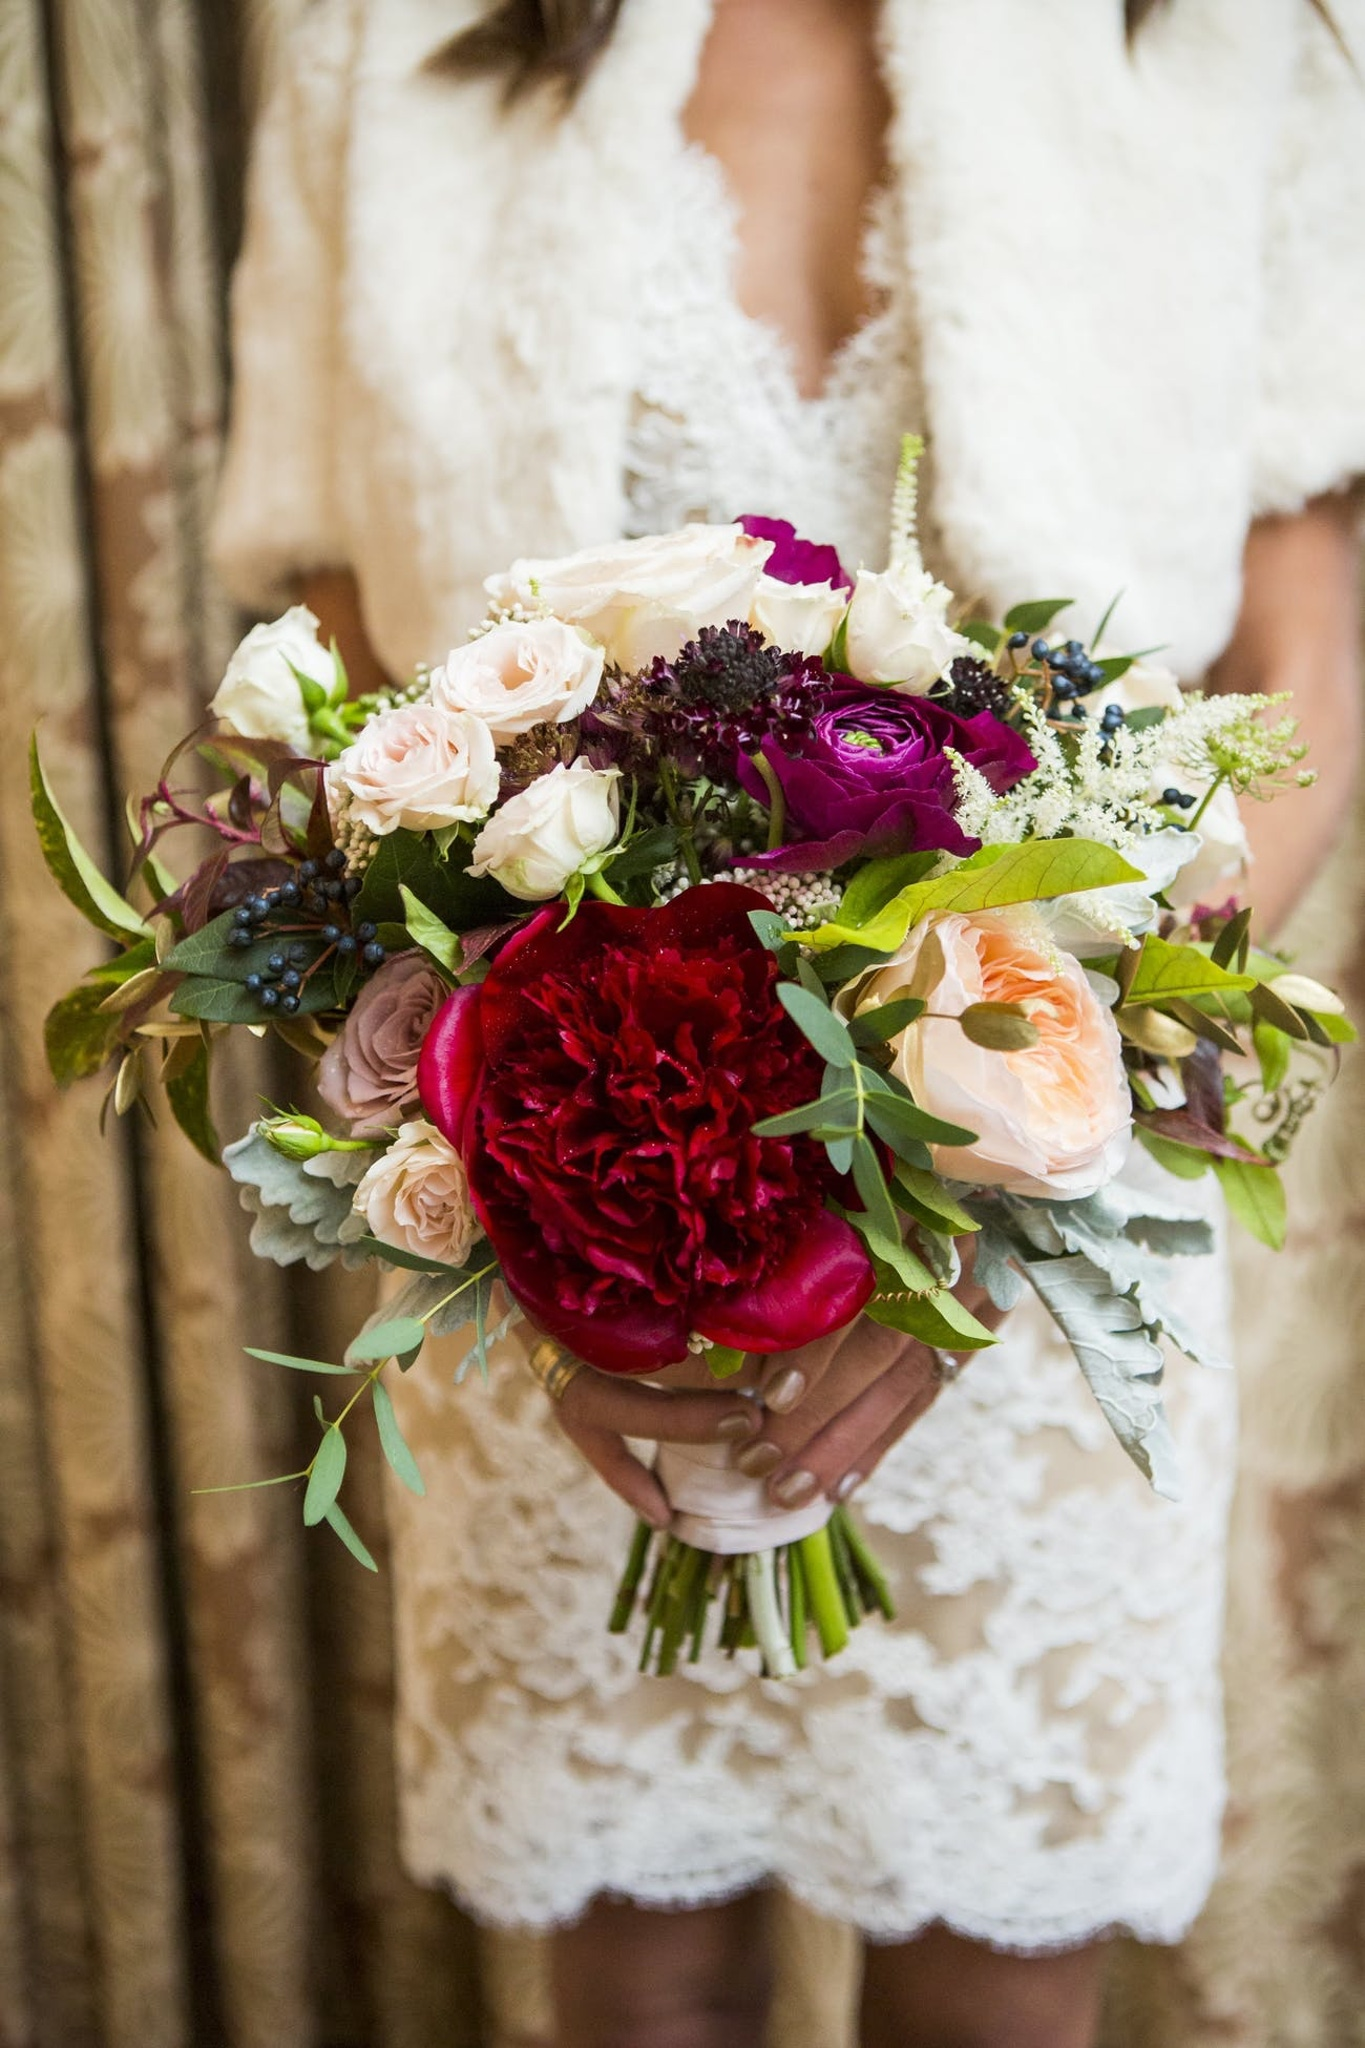 bride holding a red and white wedding bouquet with greenery for fall